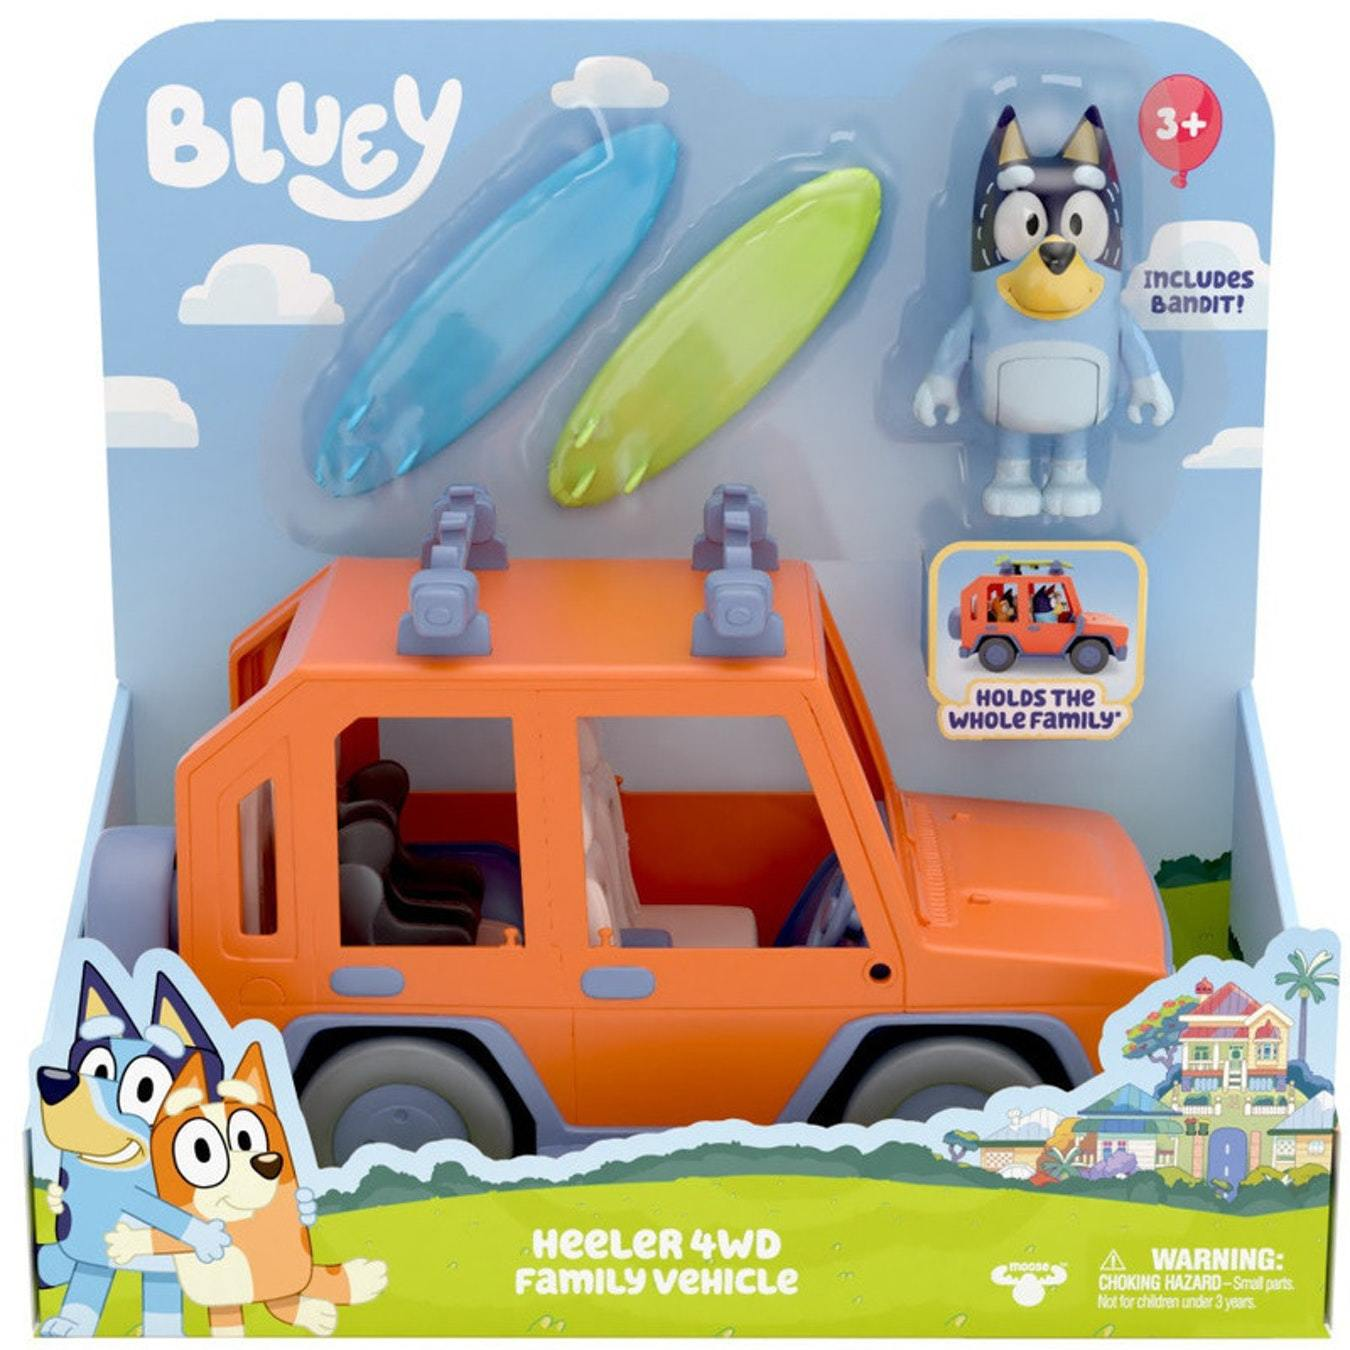 Moose: Bluey Heeler - 4WD Family Vehicle